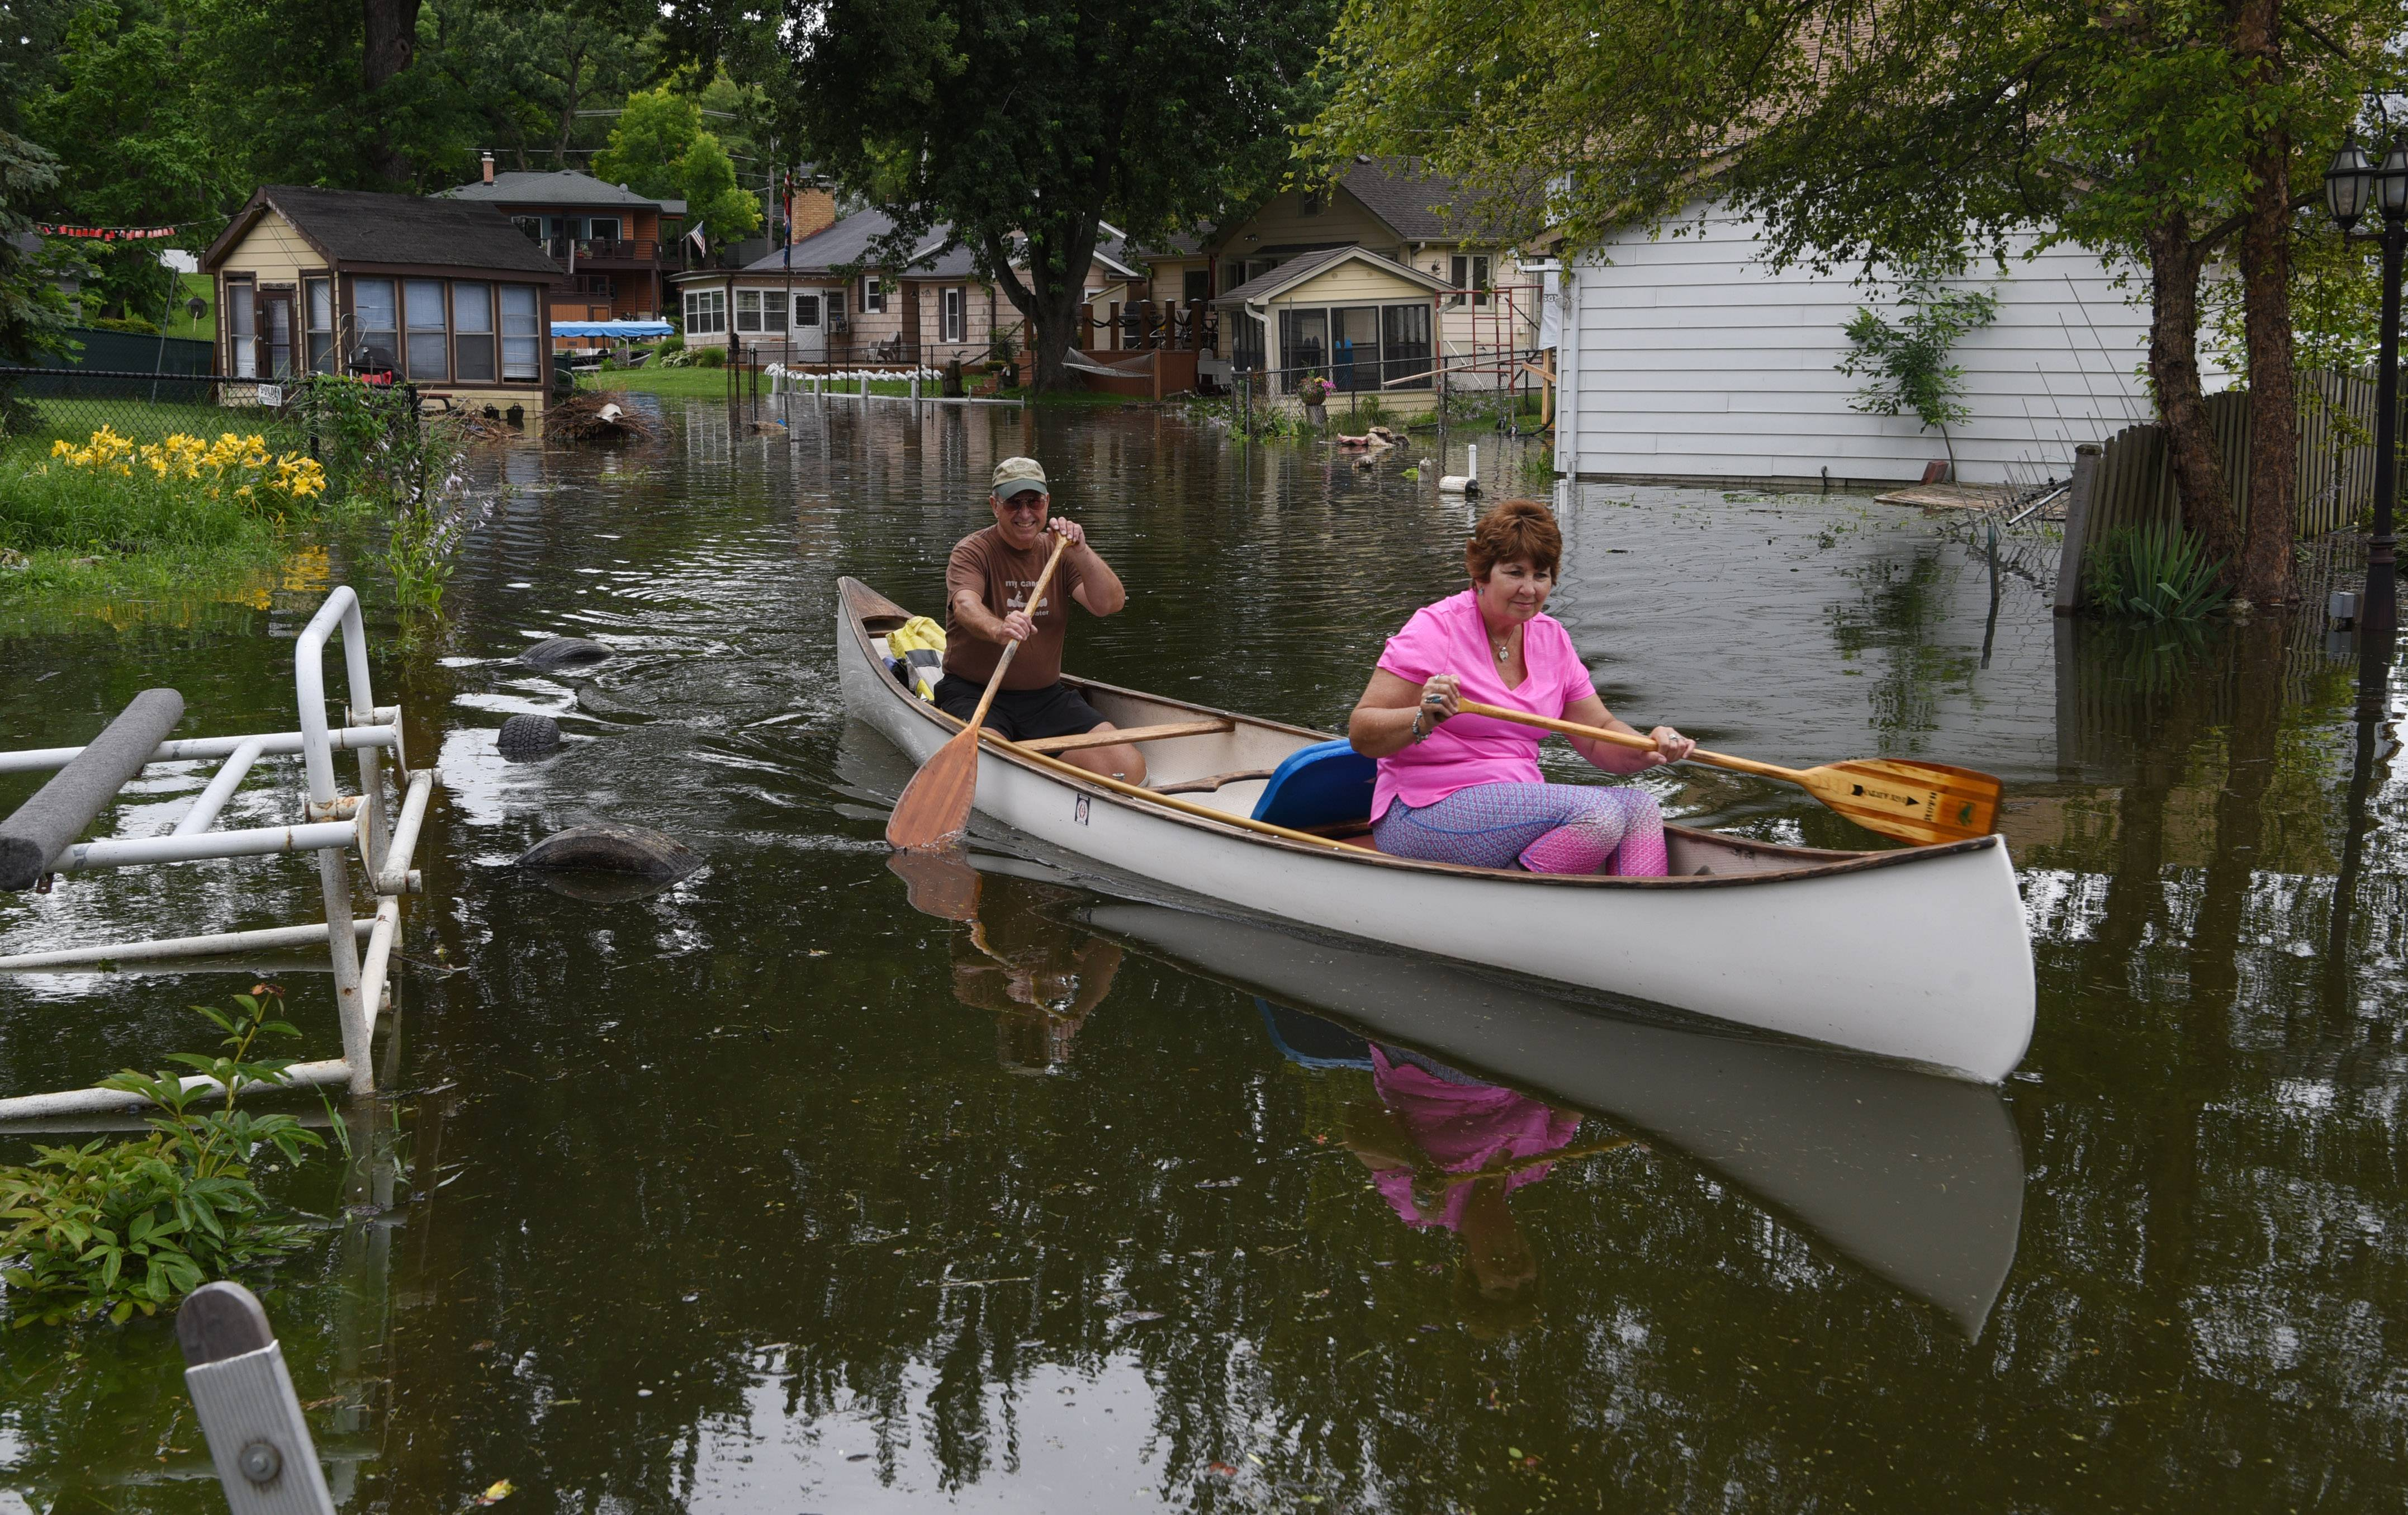 Joe Lewnard/jlewnard@dailyherald.comLouis Igyarto and his wife Ruth paddle their canoe on the channel behind their Fox Lake home, where they been living for 25 years. They are adjacent to the water, and although there is a chance of flooding, they enjoy living there.